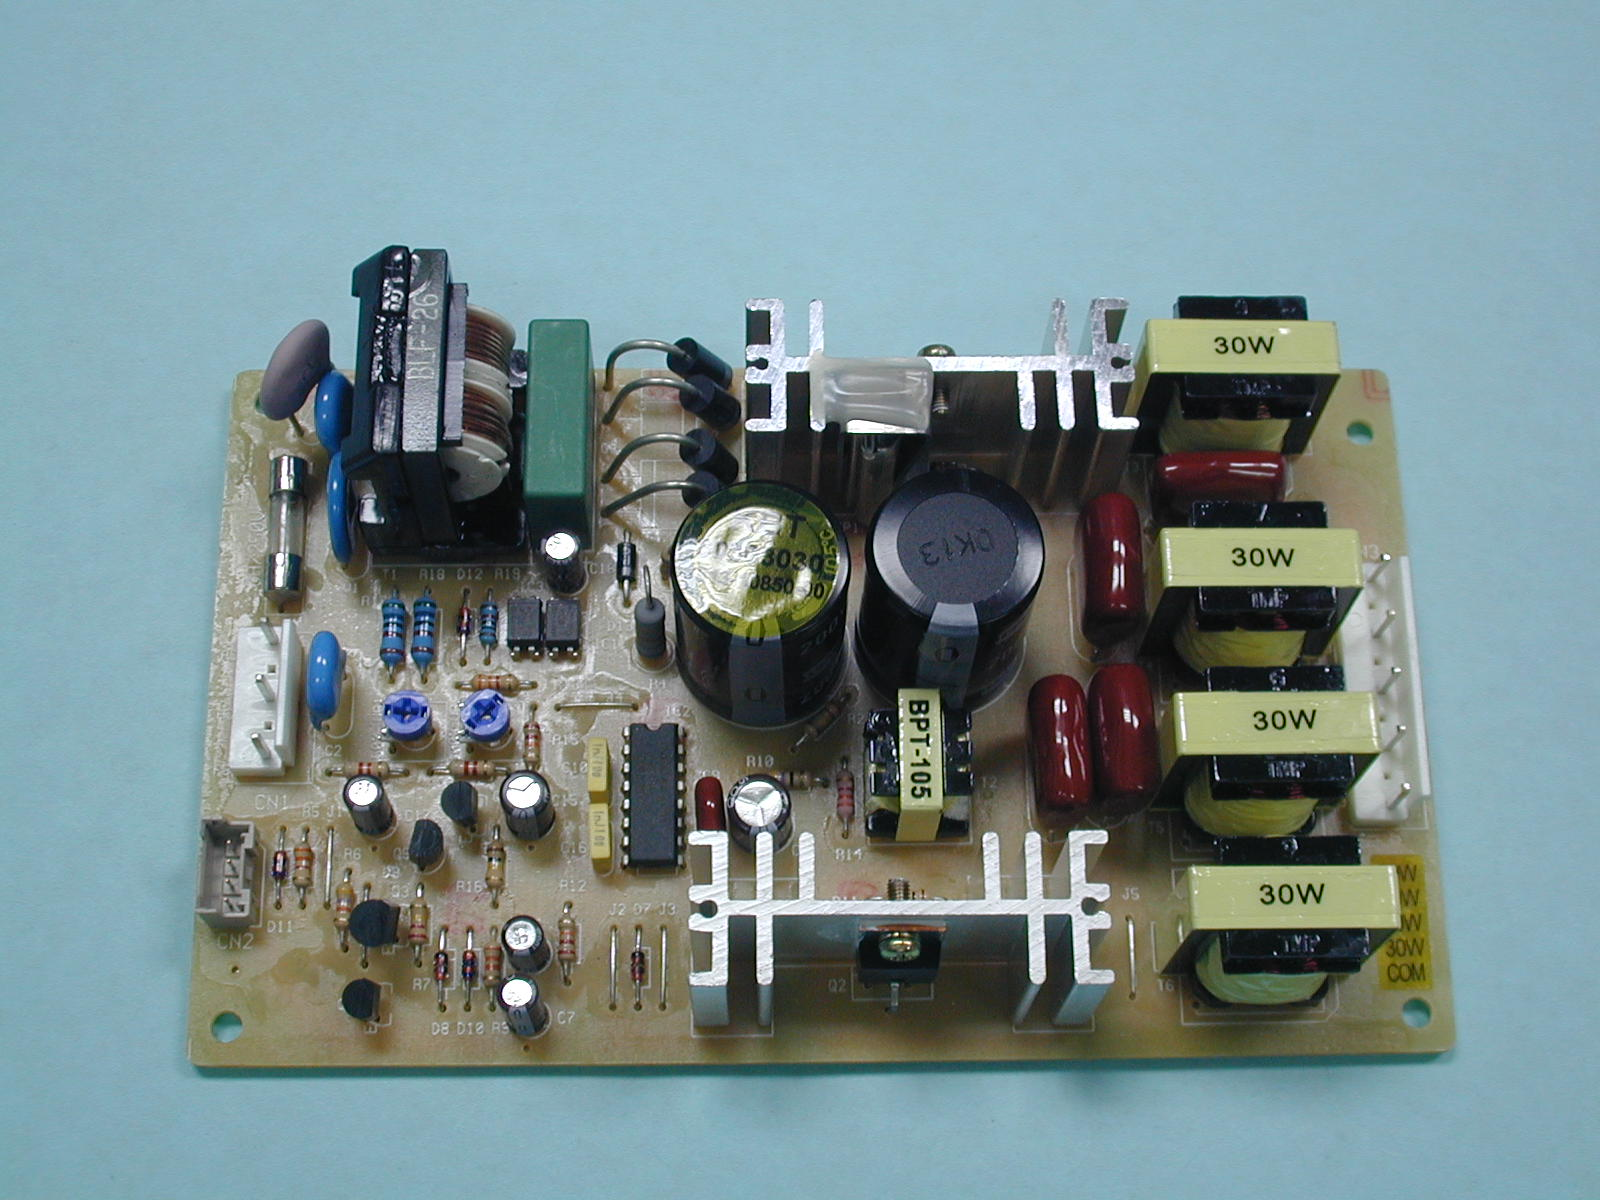 PC Board Assembly, OEM/ODM of Switching Power Supply, OEM / ODM are Welcome (PC Board Assembly, OEM / ODM of Switching Power Supply, OEM / ODM sont Bienvenue)